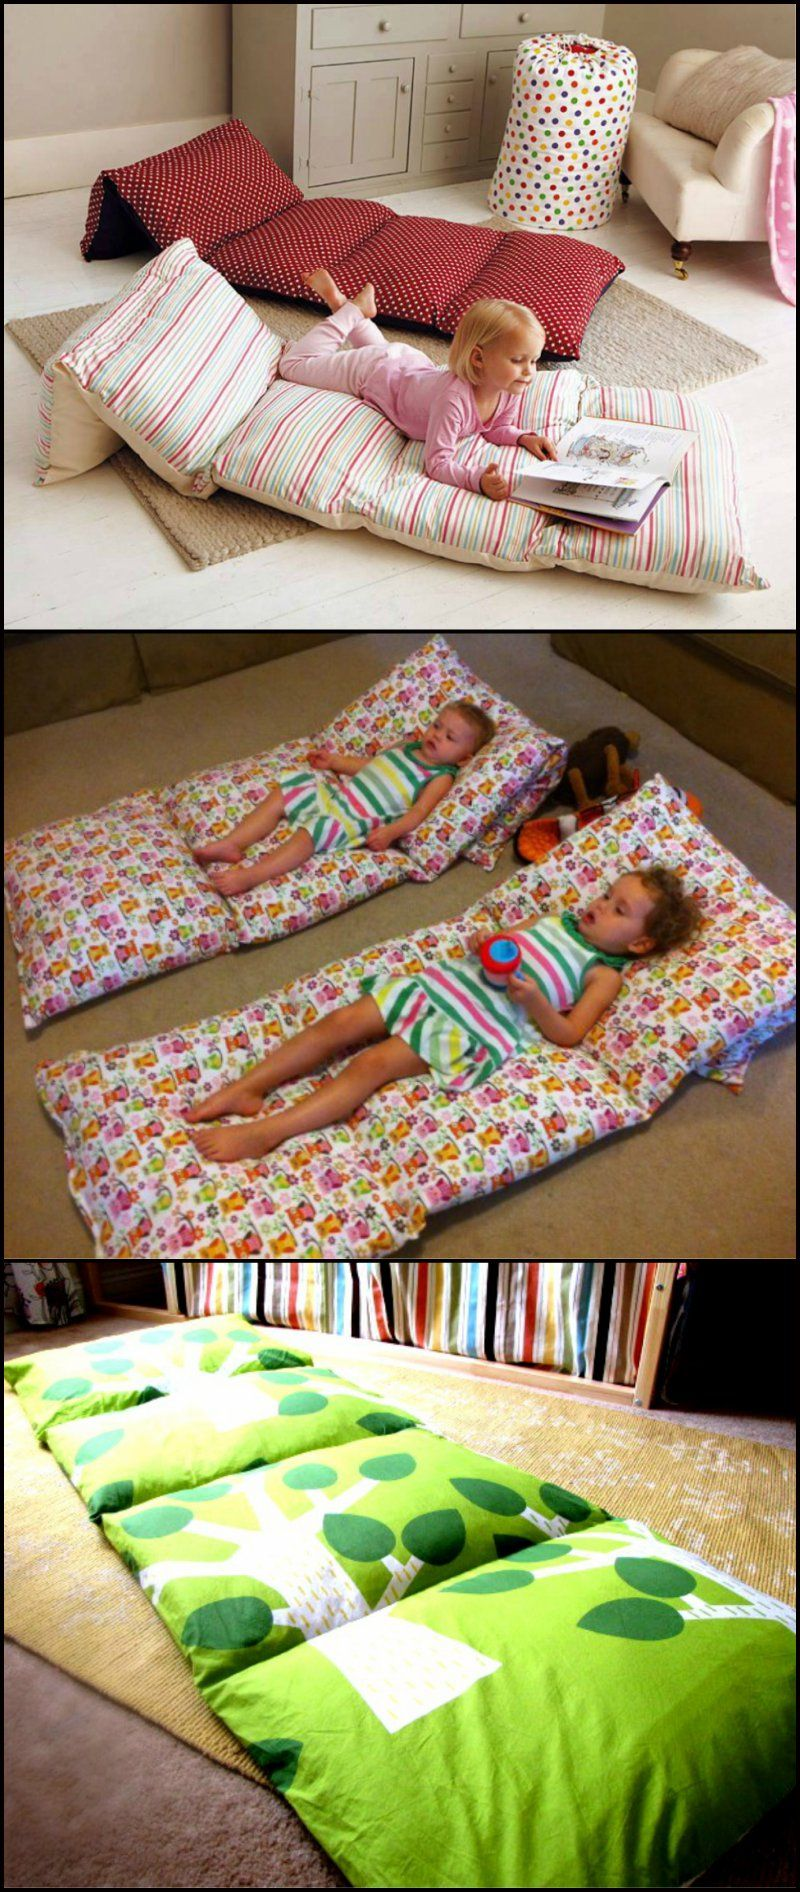 if you have extra pillows in your home, you can turn them into a